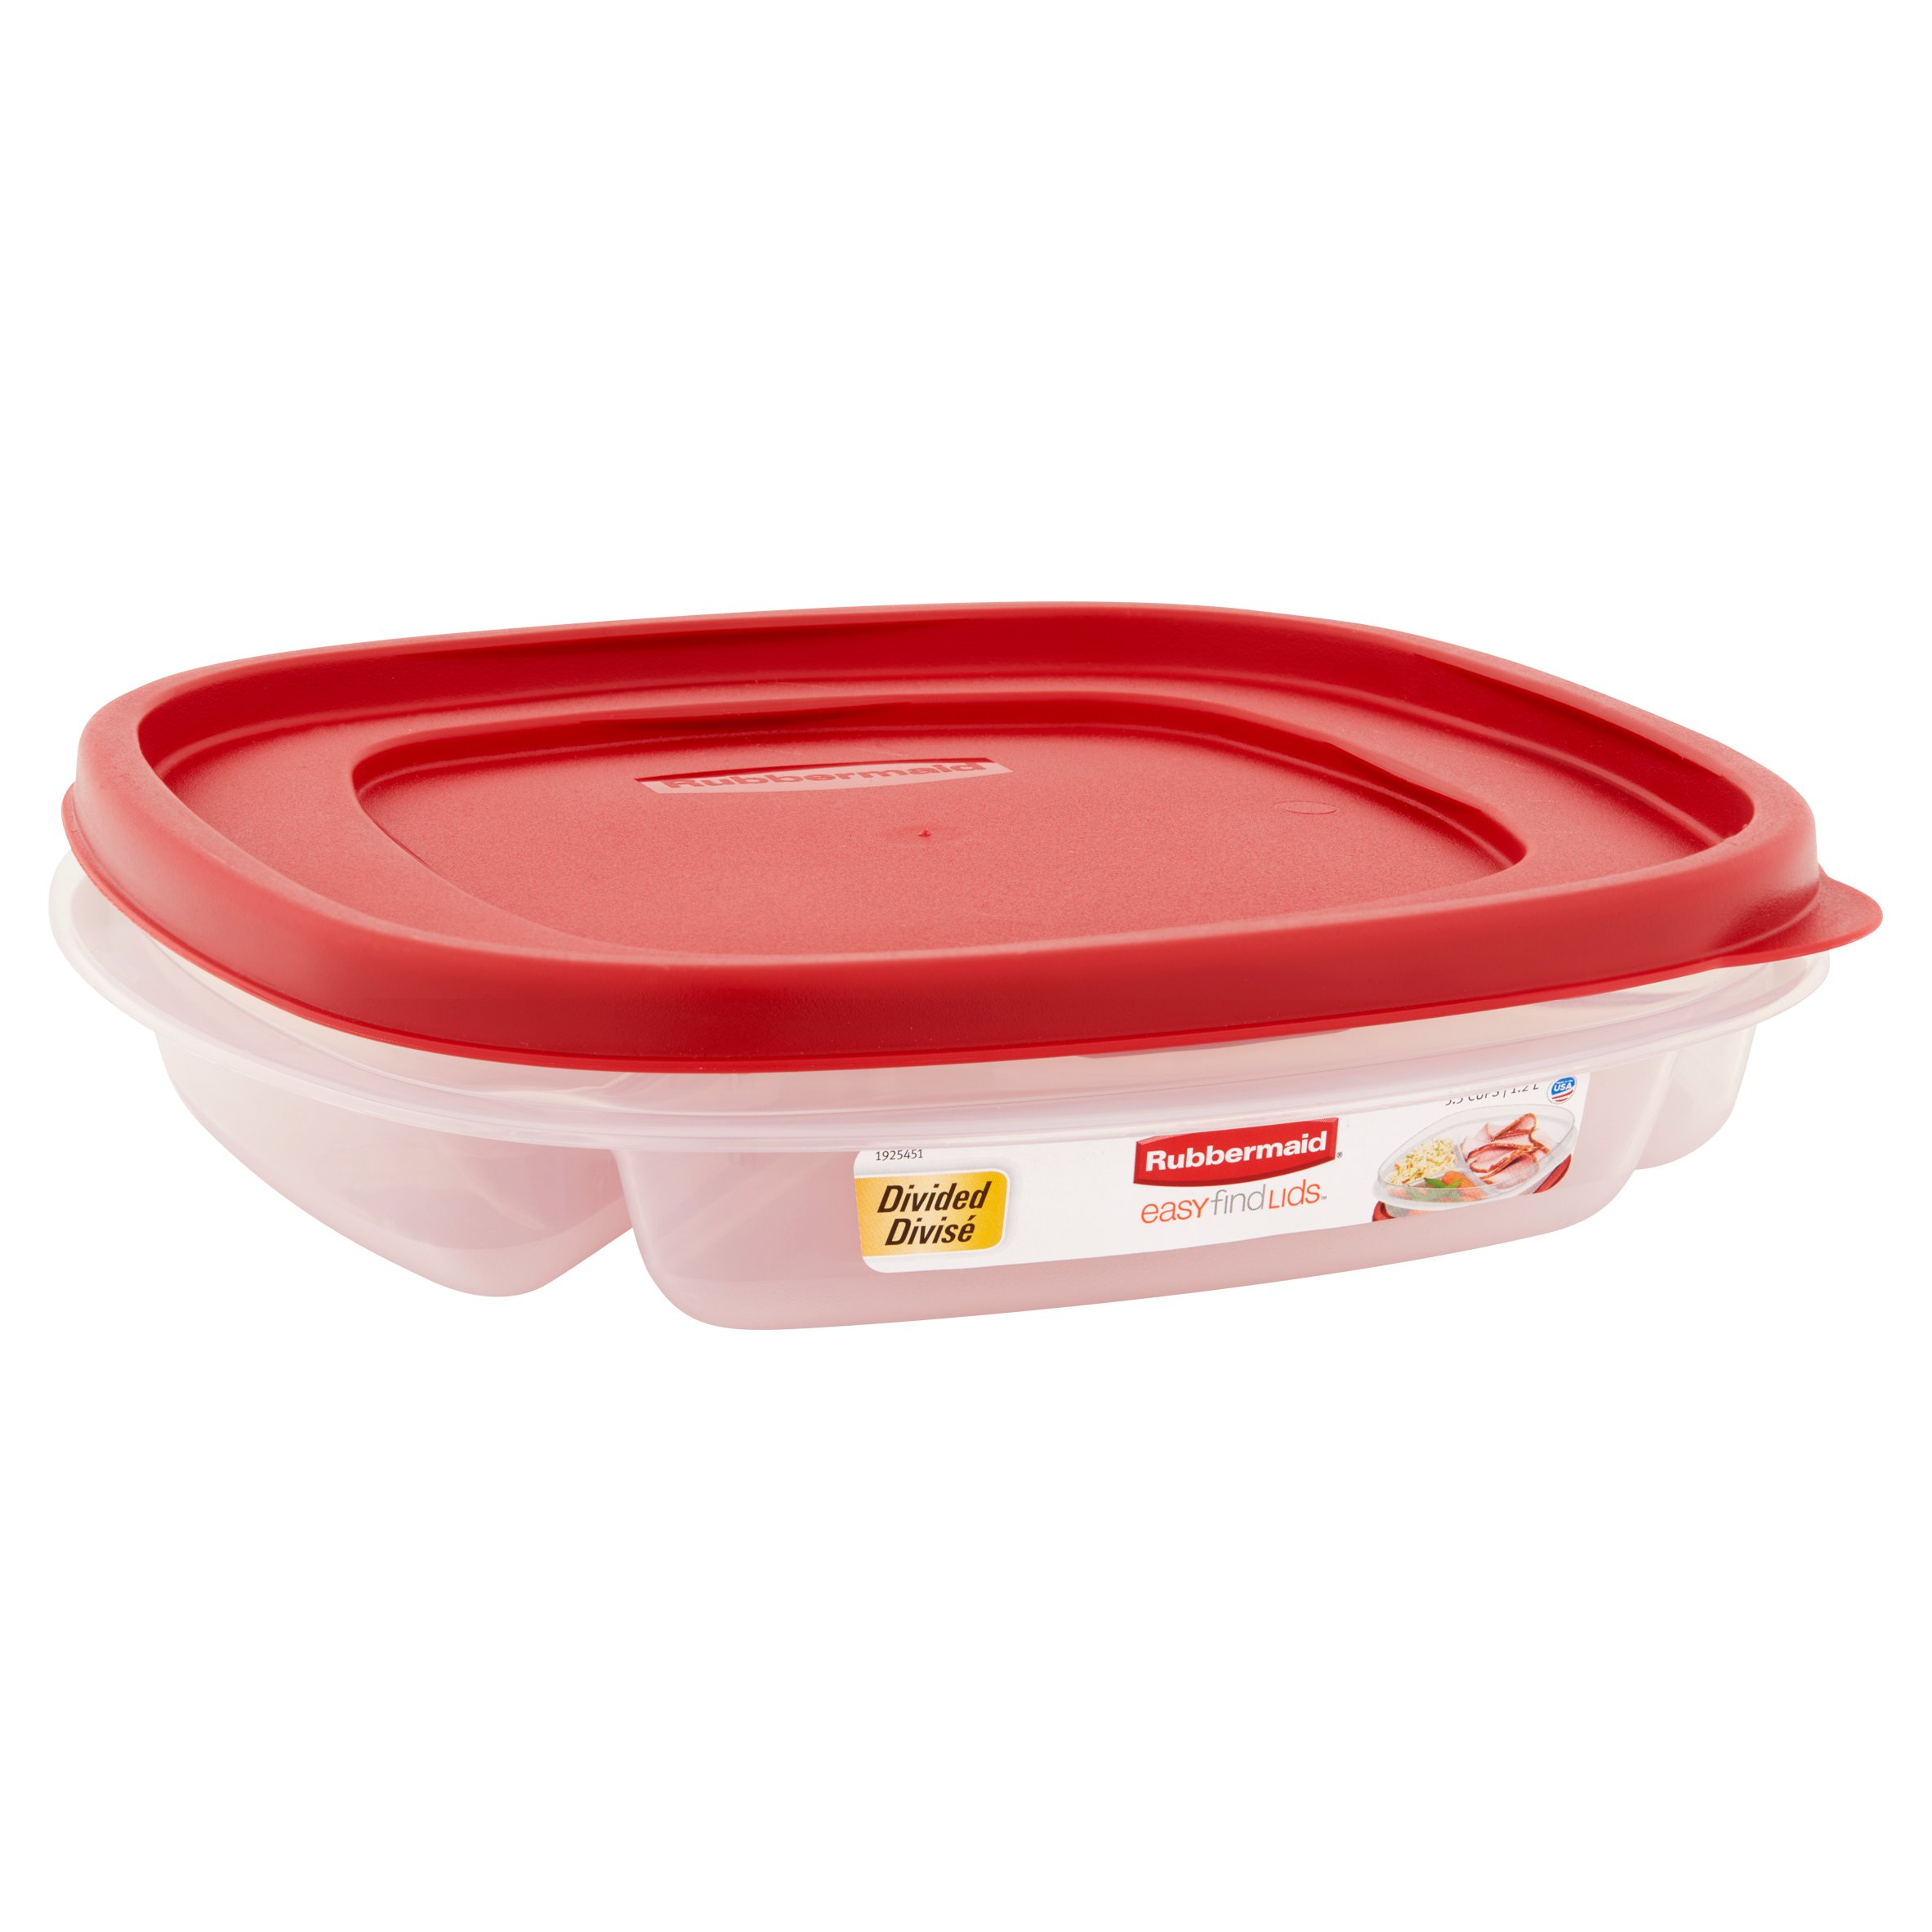 Rubbermaid Easy Find Lids Food Storage Container 48 Cup Divided